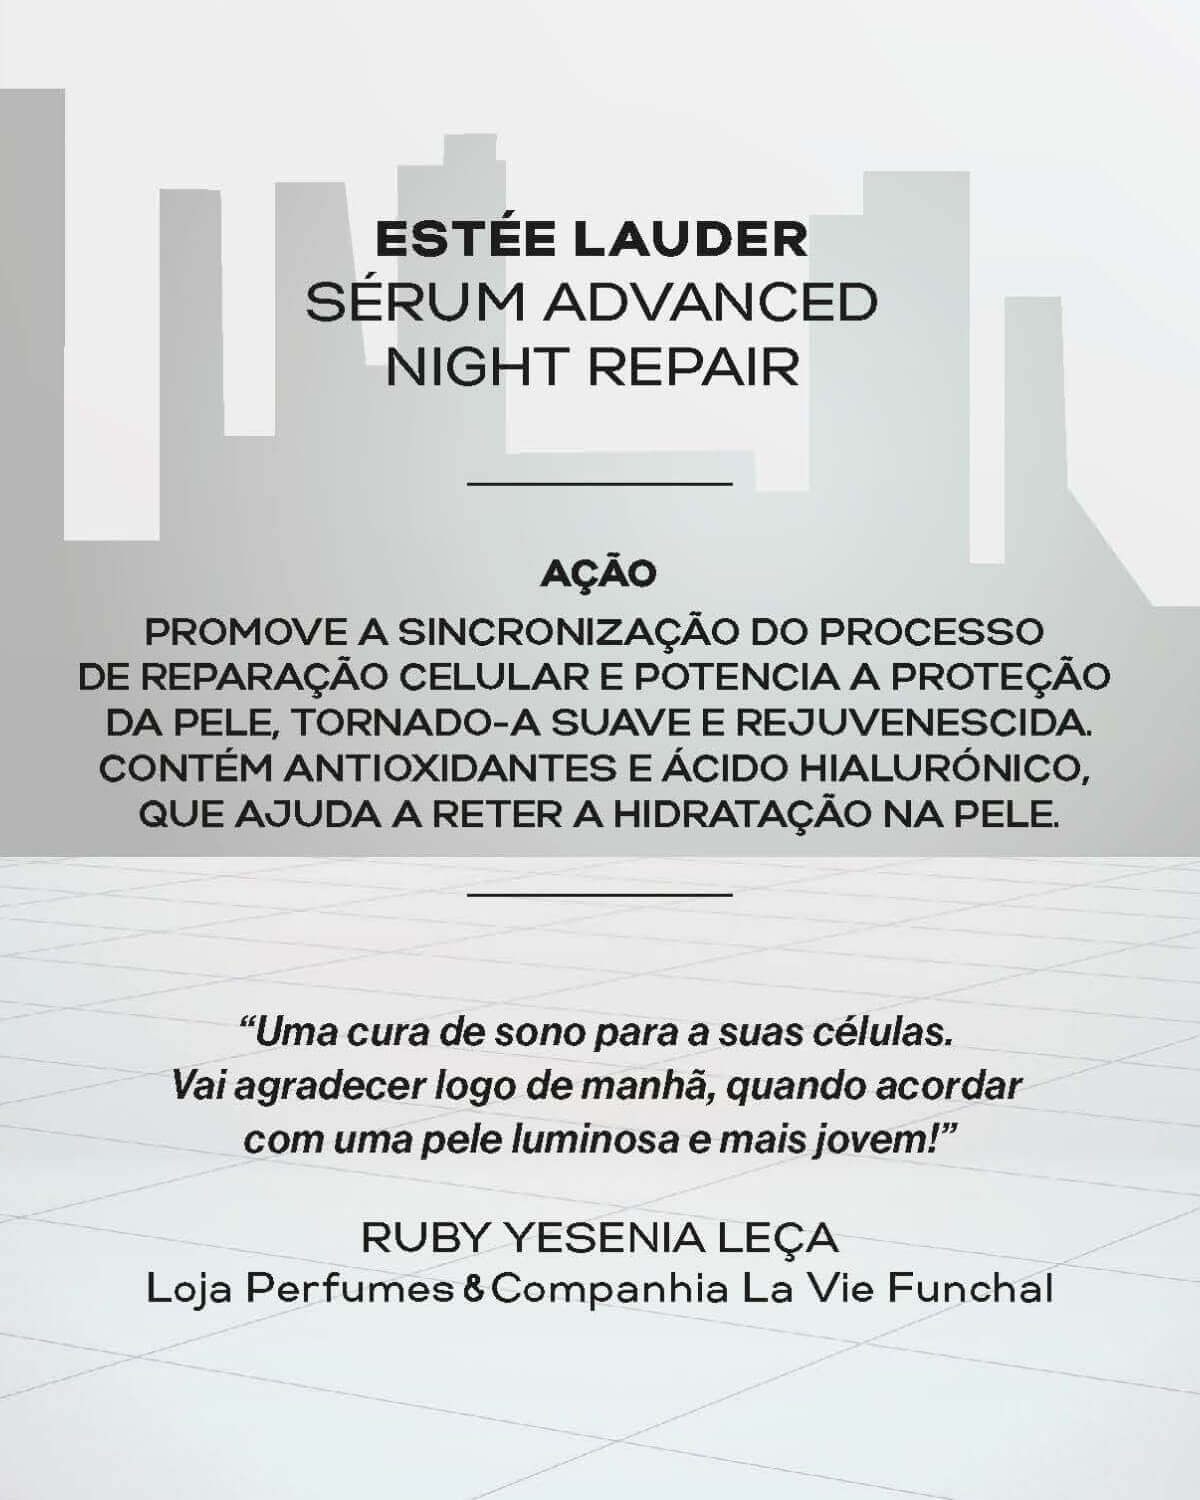 Advanced Night Repair Estée Lauder Serum